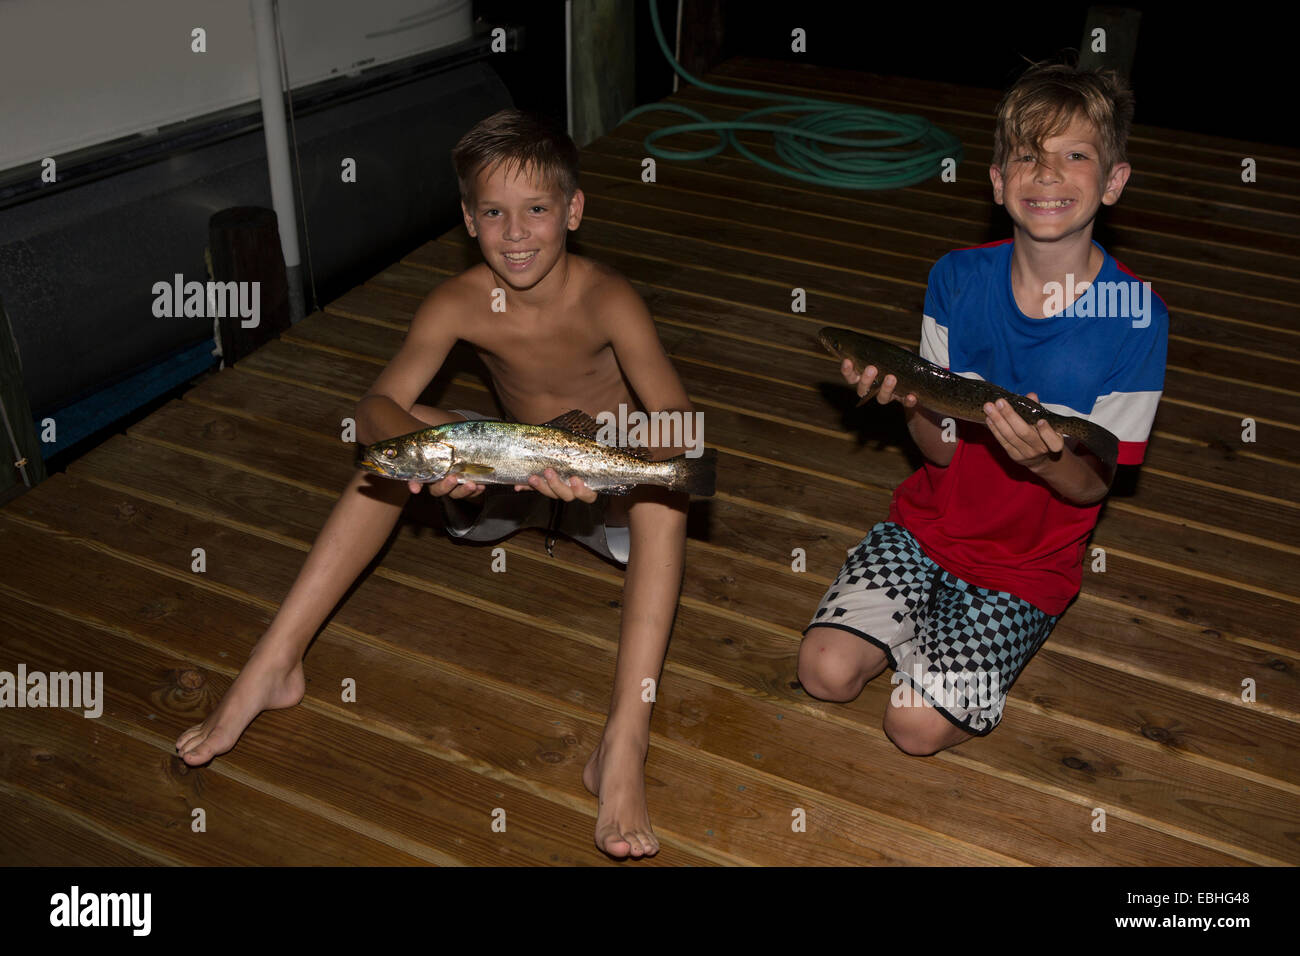 Two brothers on pier at night holding spanish mackerel fish, Shalimar, Florida, USA - Stock Image